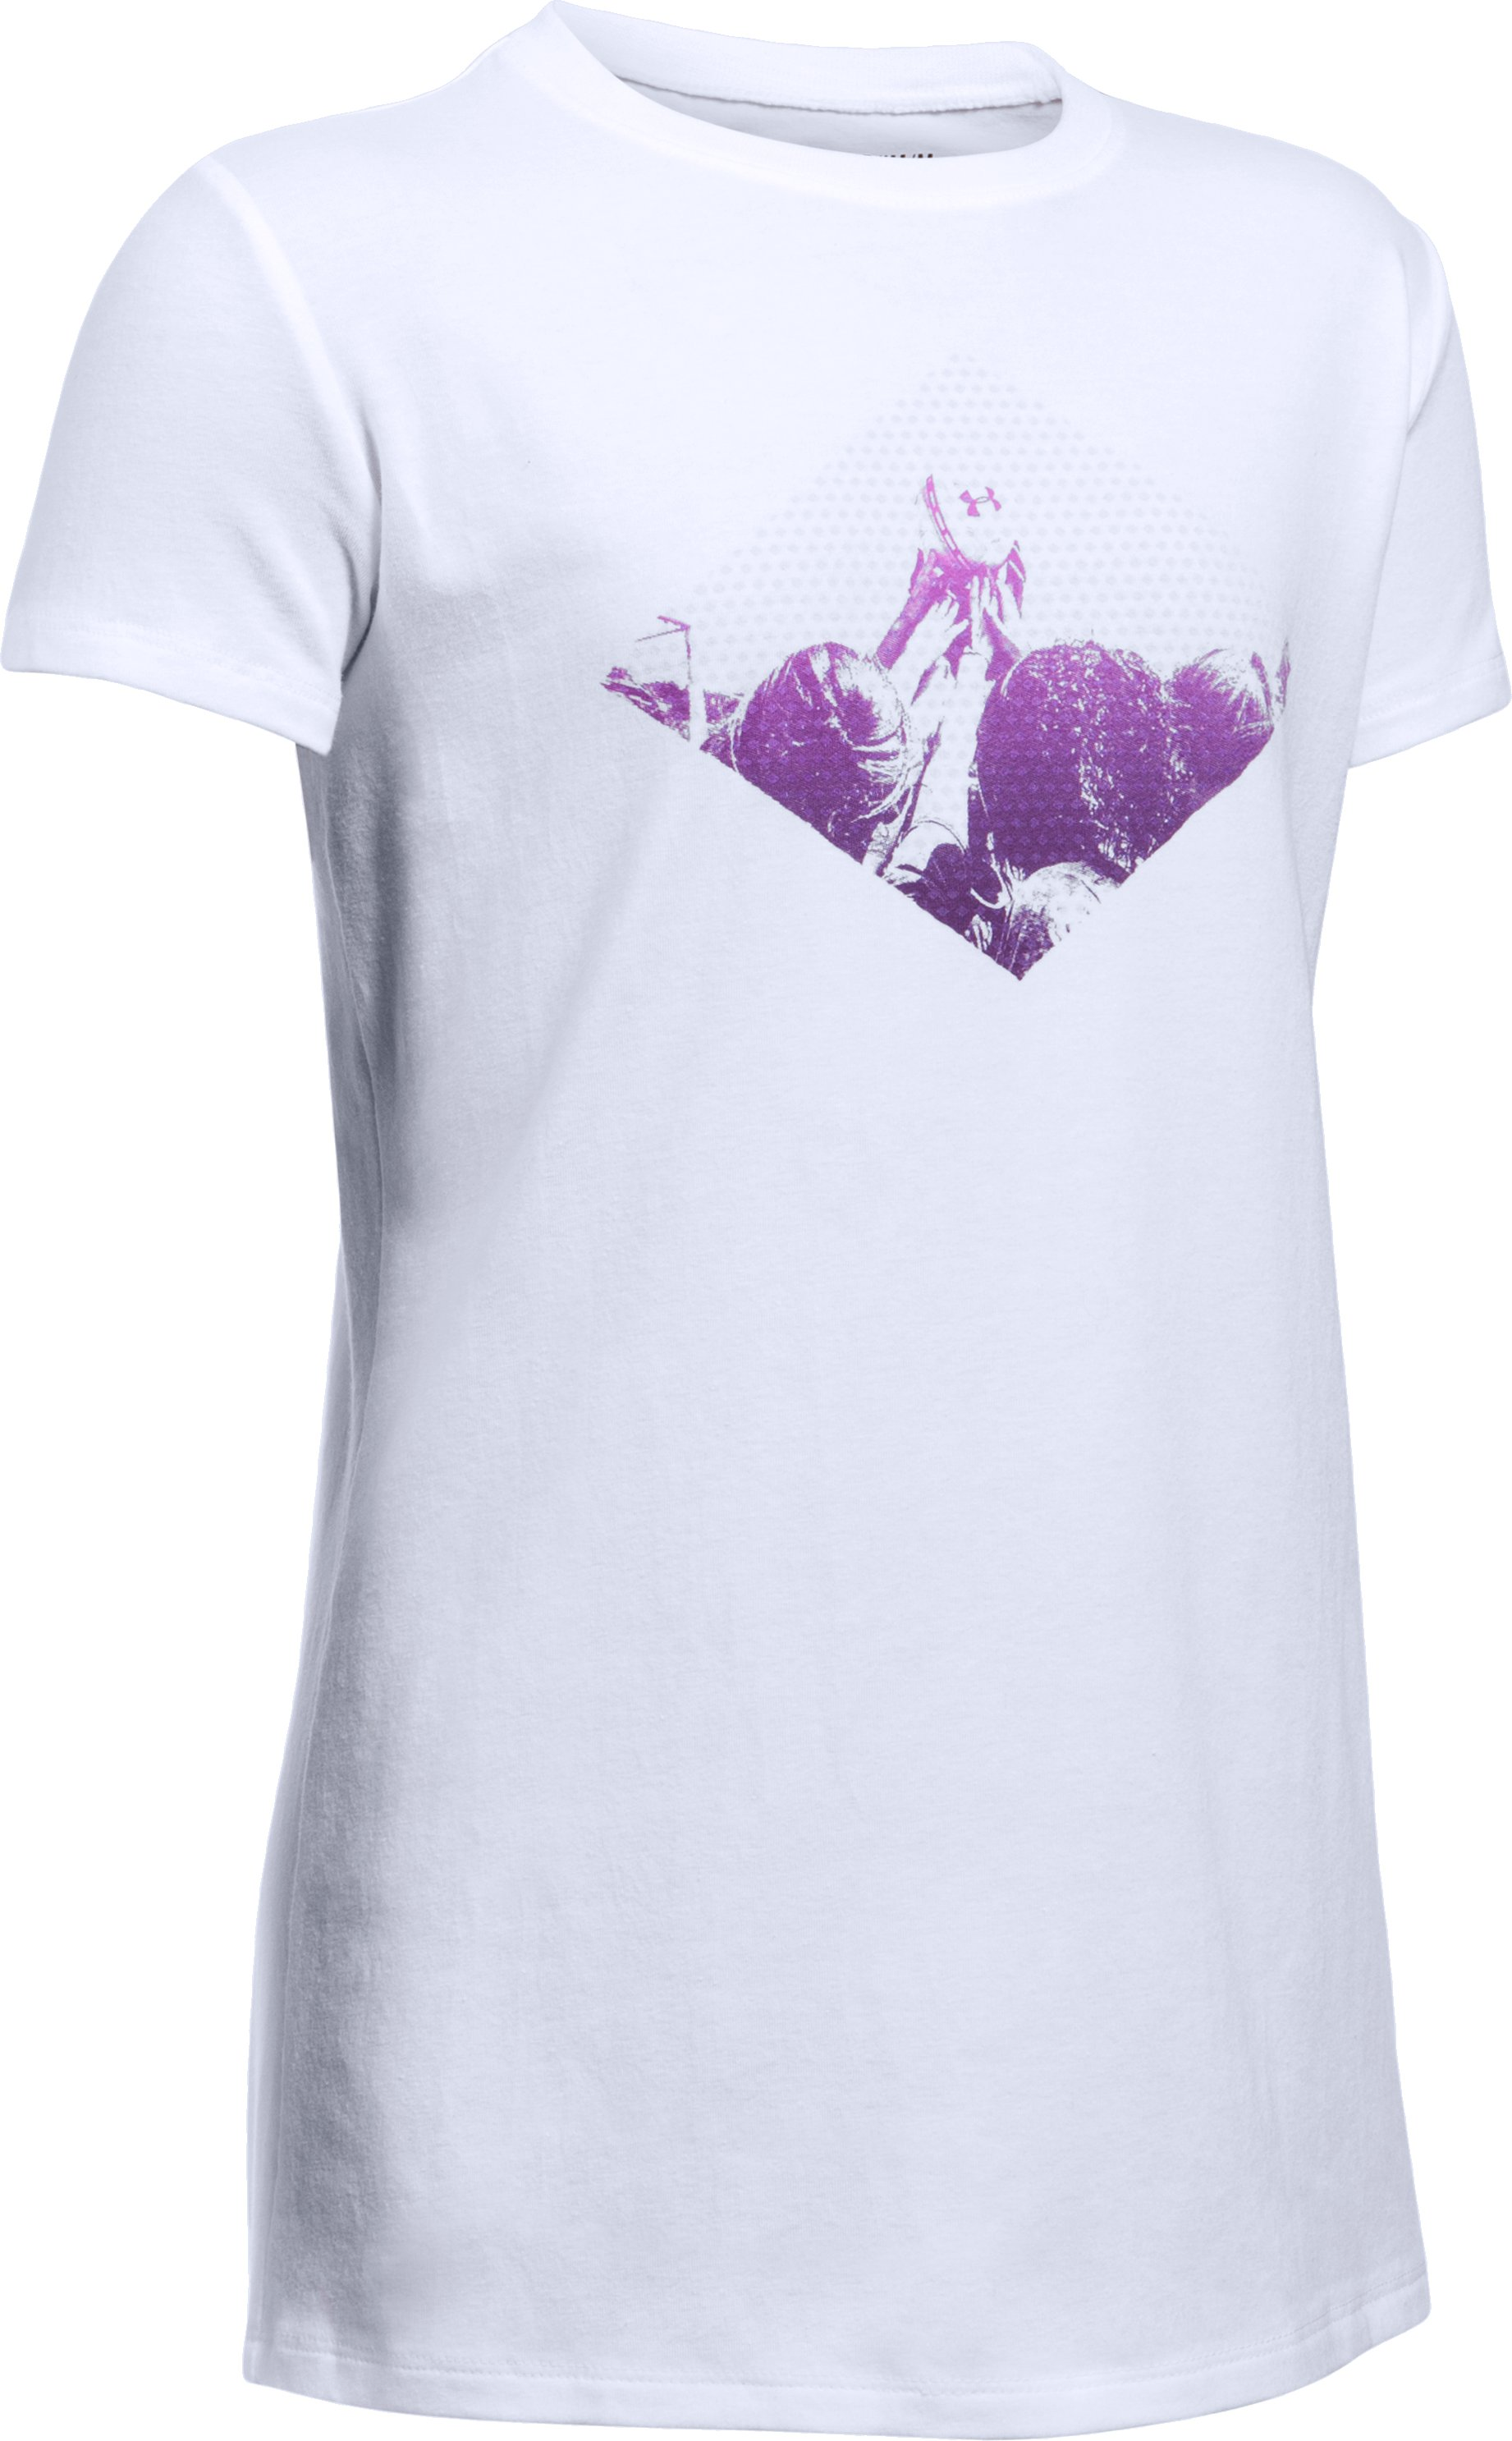 She Plays We Win UA Soccer T-Shirt, White